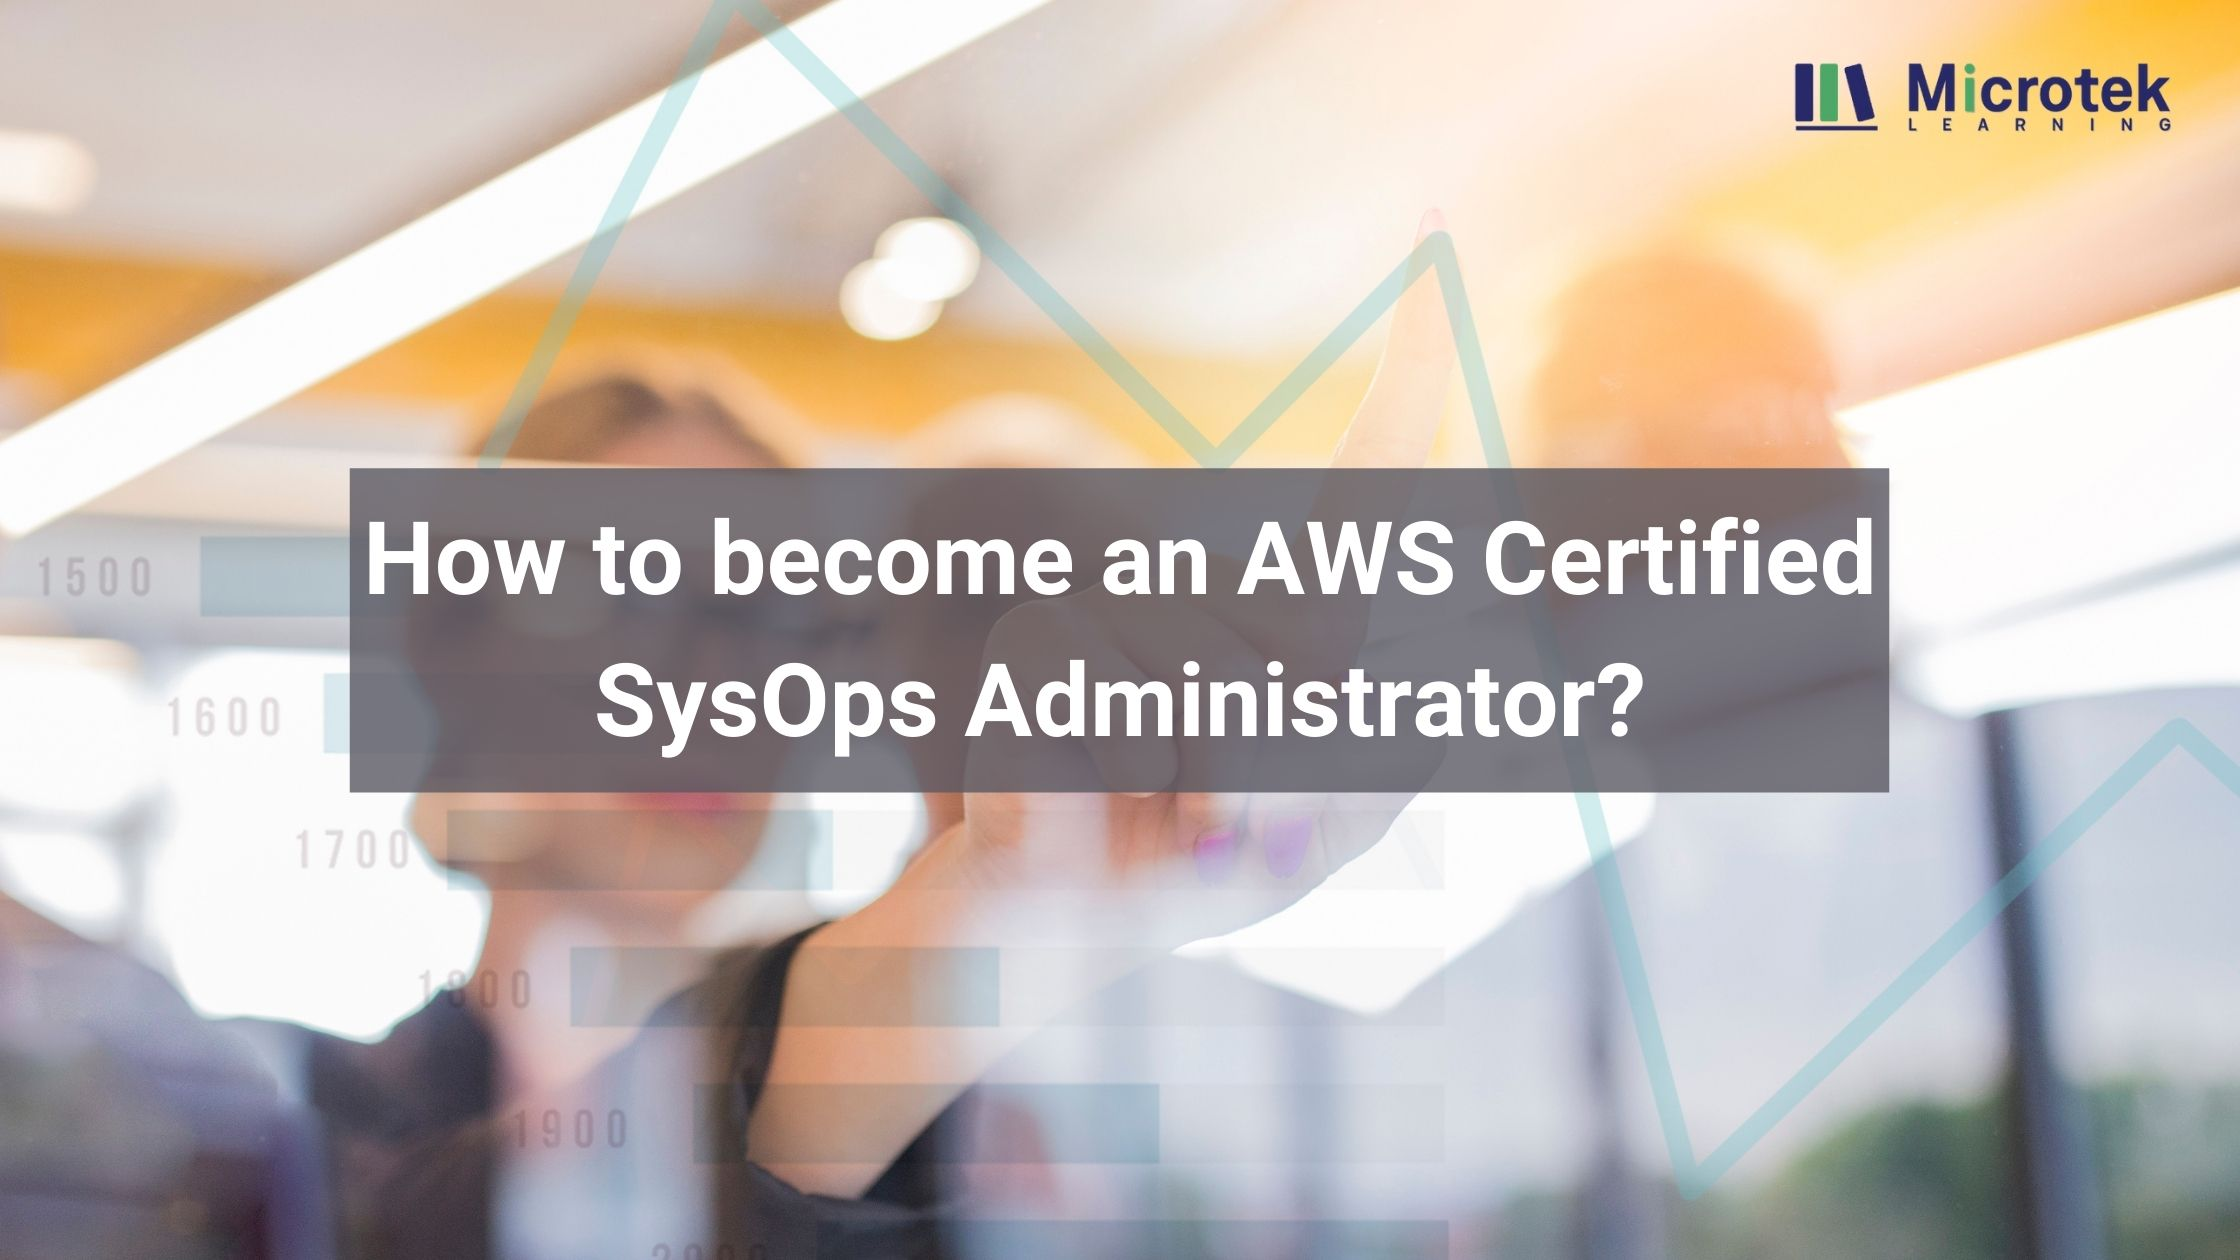 become an AWS Certified SysOps Administrator